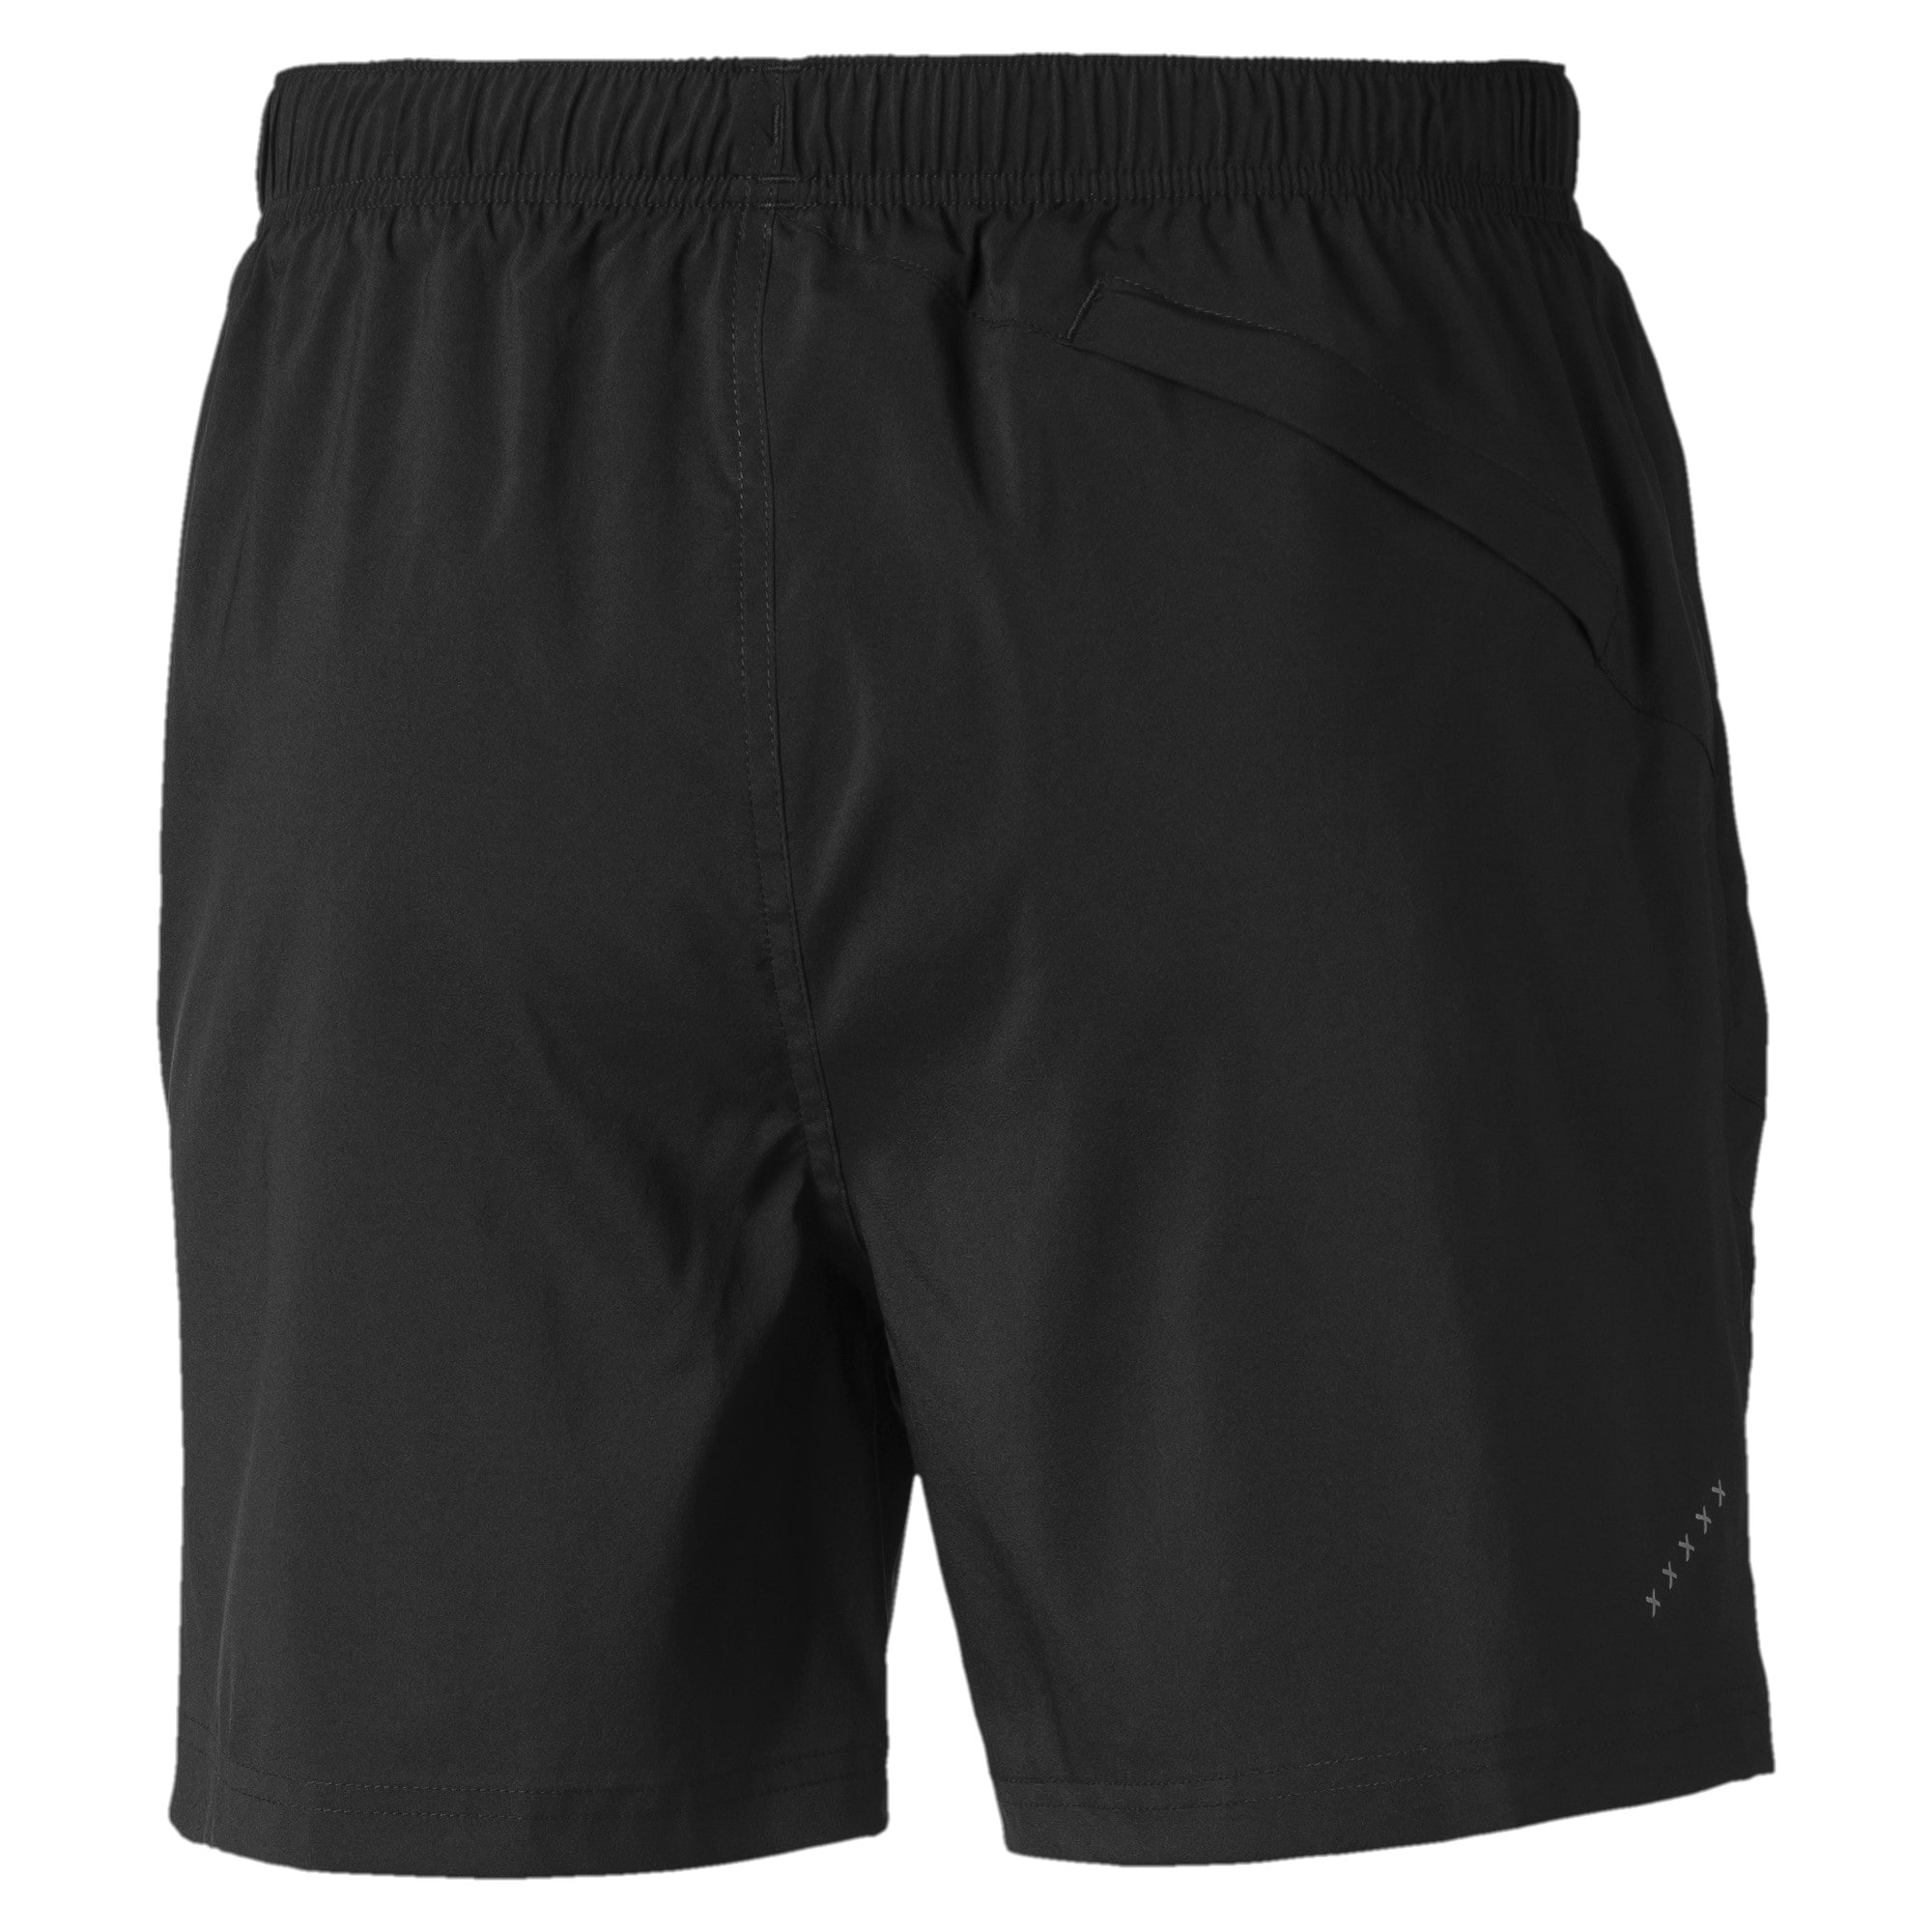 Thumbnail 5 of Ignite Men's Shorts, Puma Black, medium